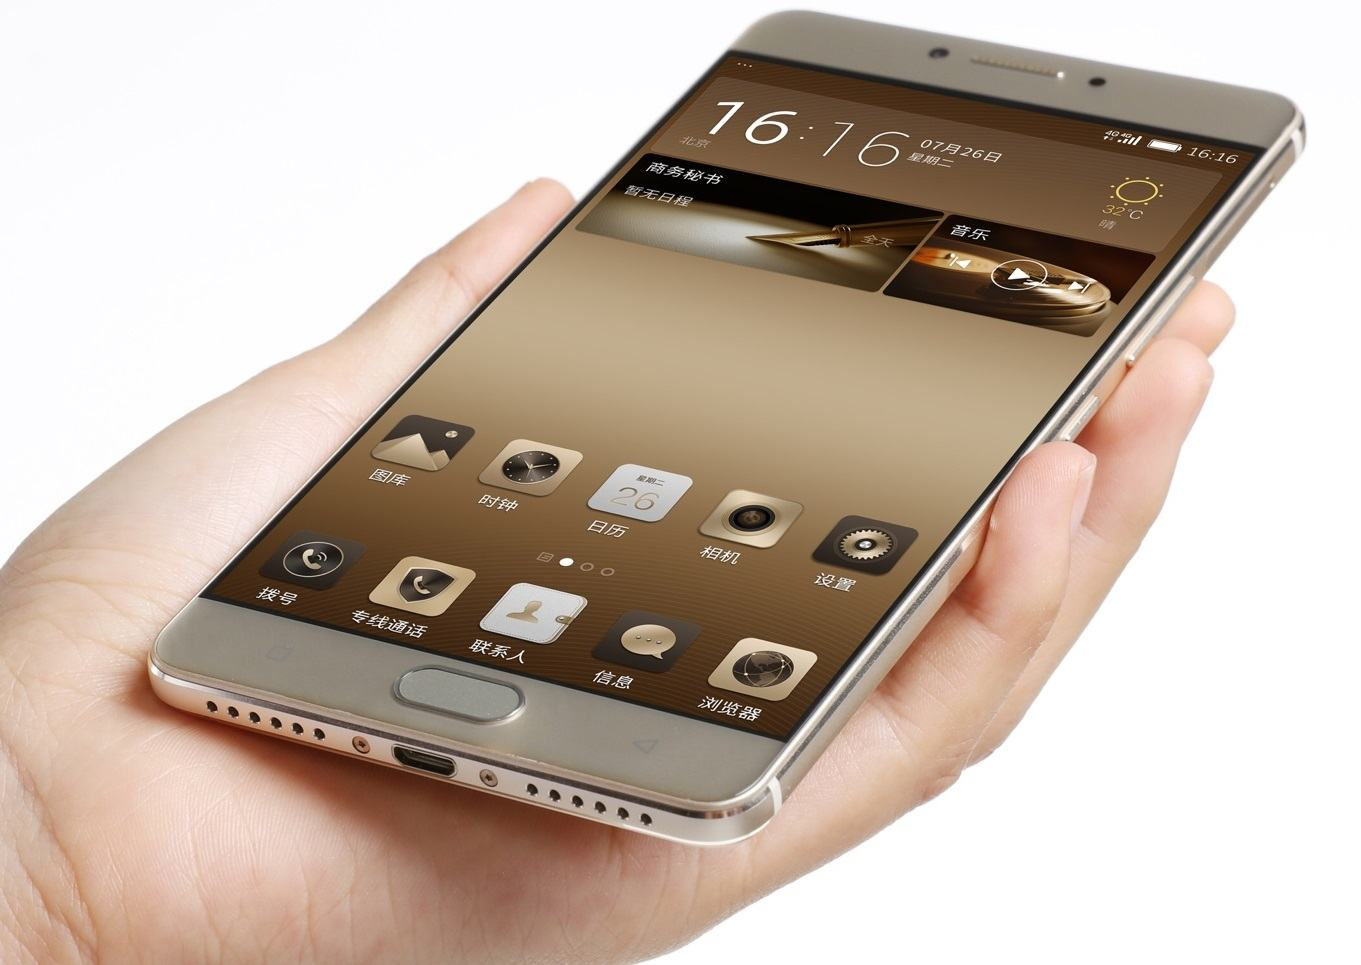 gionee m6 S plus high end phone in 2017